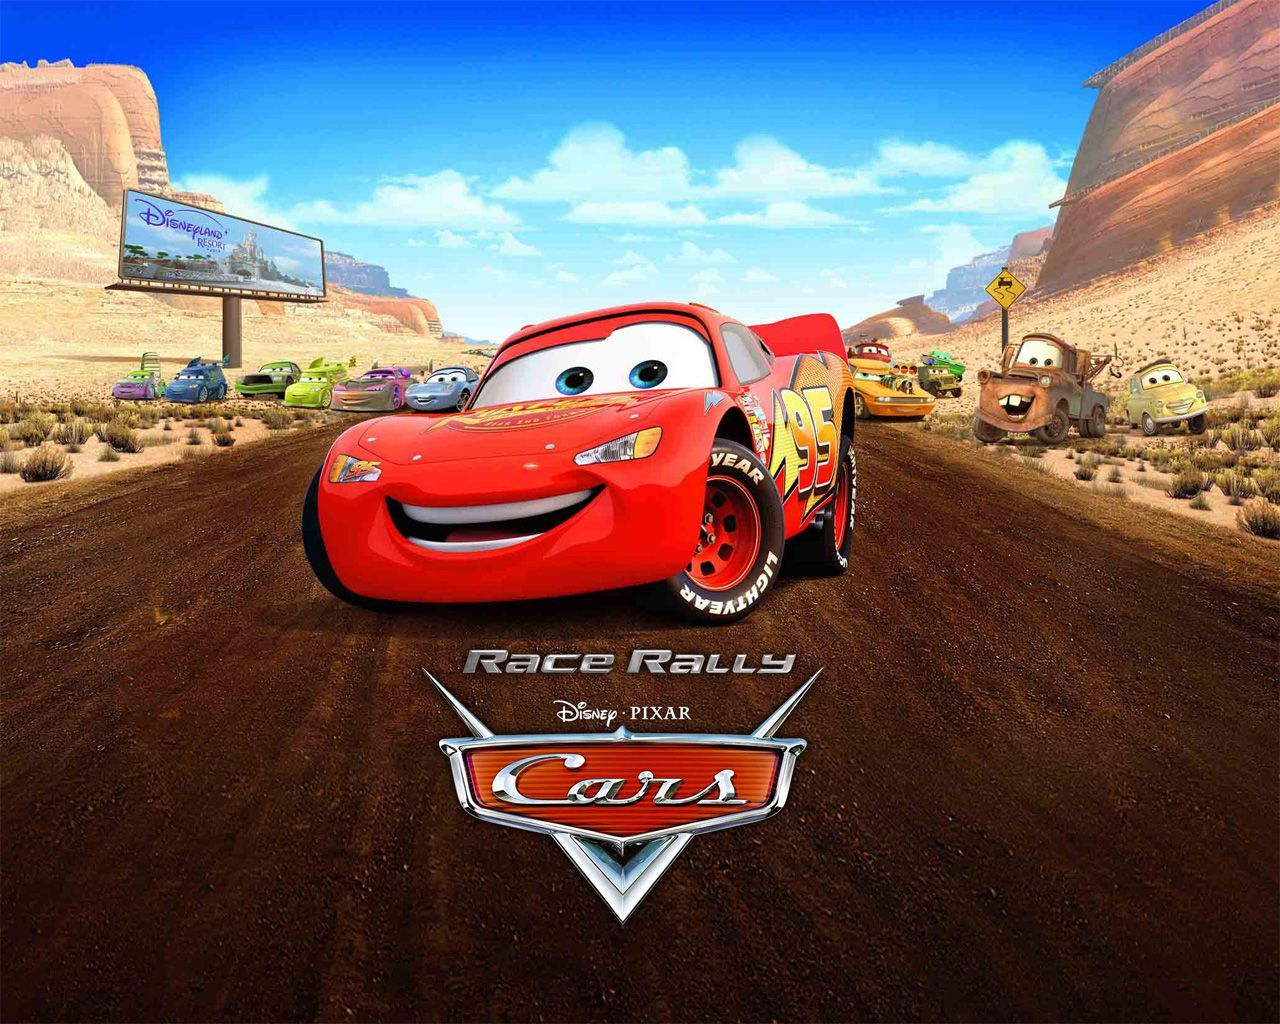 Imagenes De Cars 2 Wallpapers 40 Wallpapers Wallpapers For